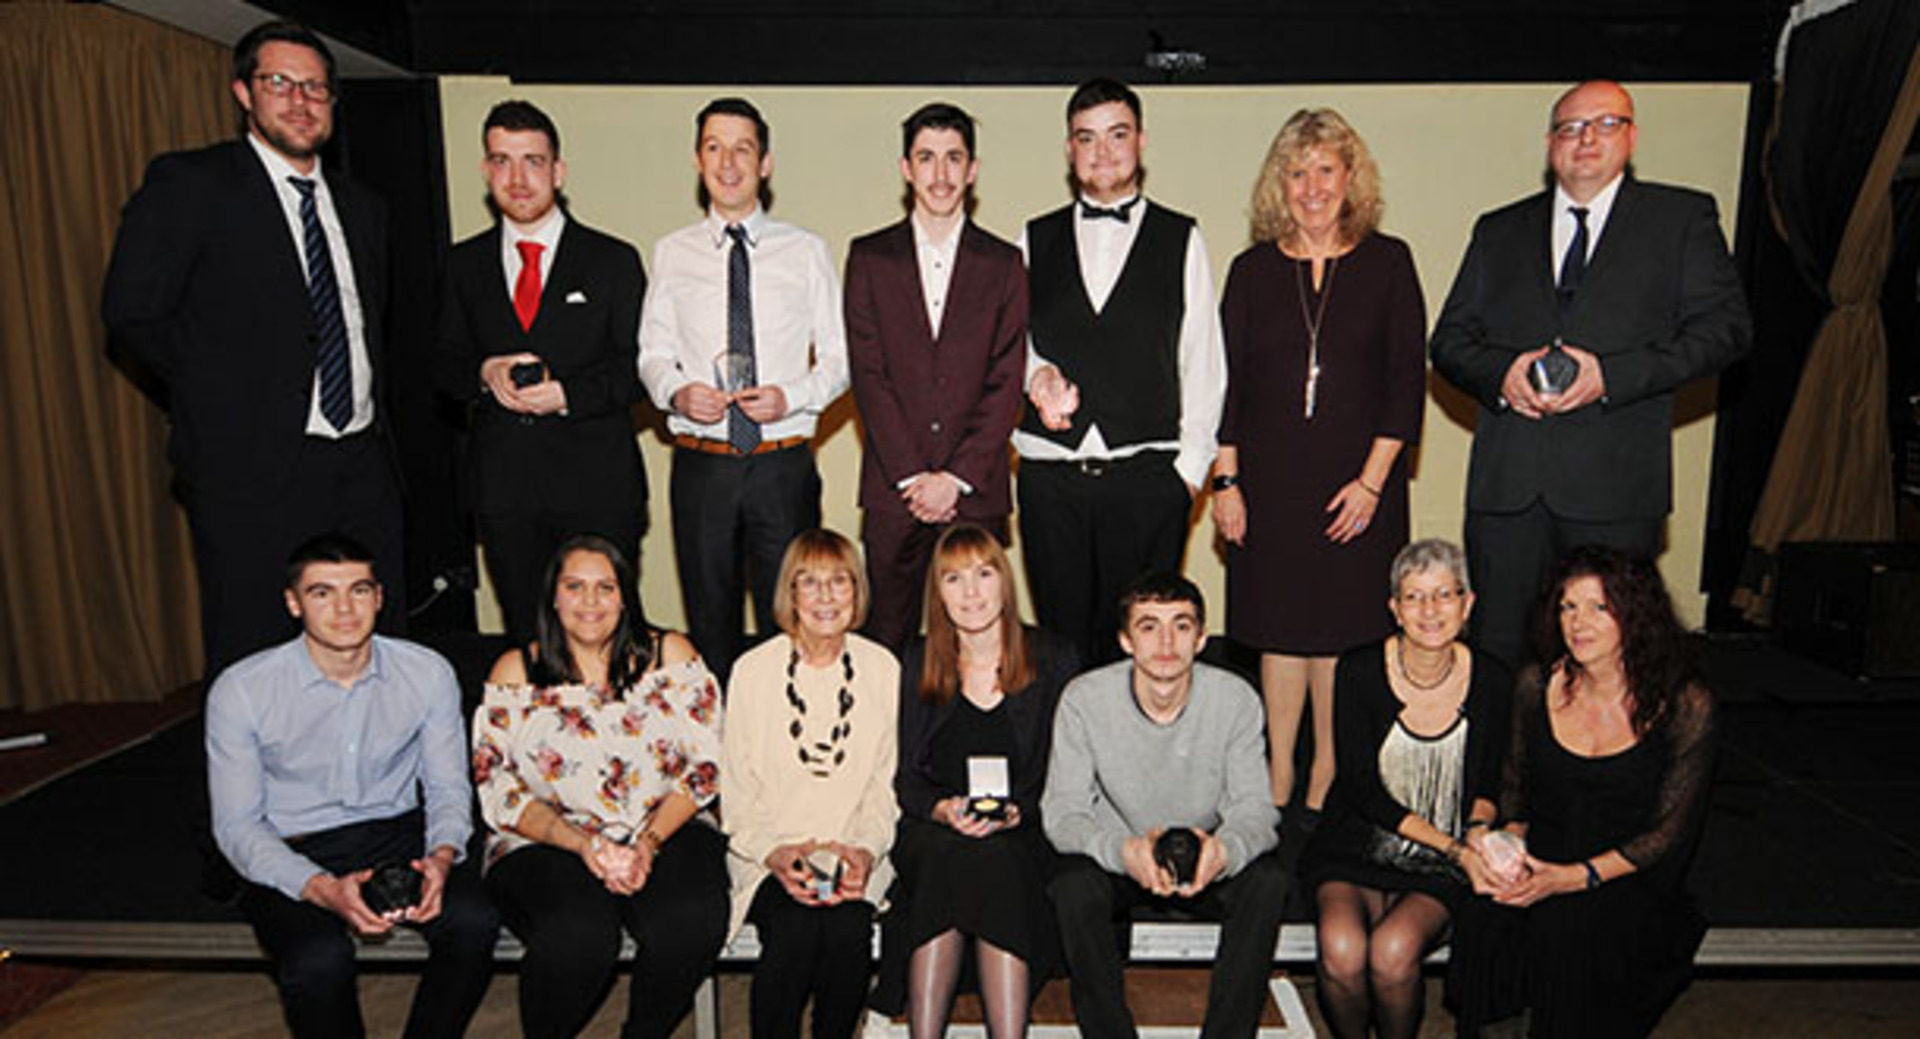 Students and Staff celebrate success at Annual Award Ceremony